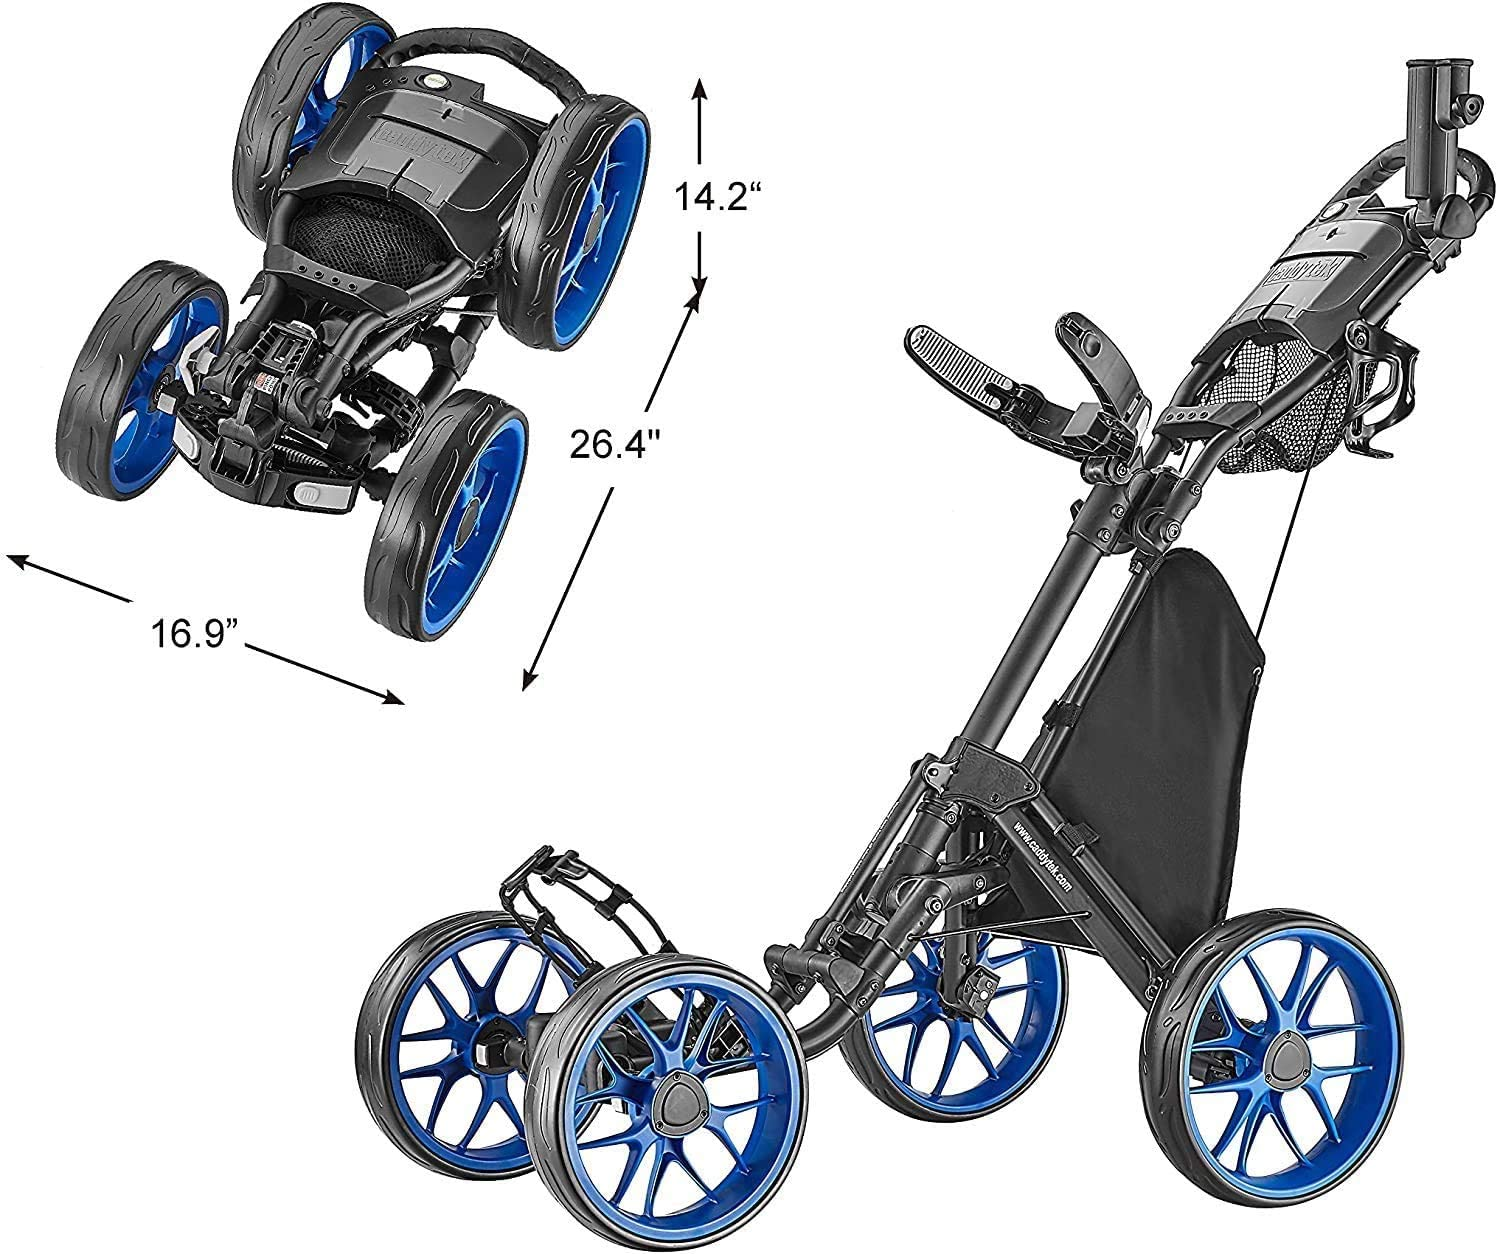 CaddyTek 4 Wheel Golf Push Cart Caddycruiser One